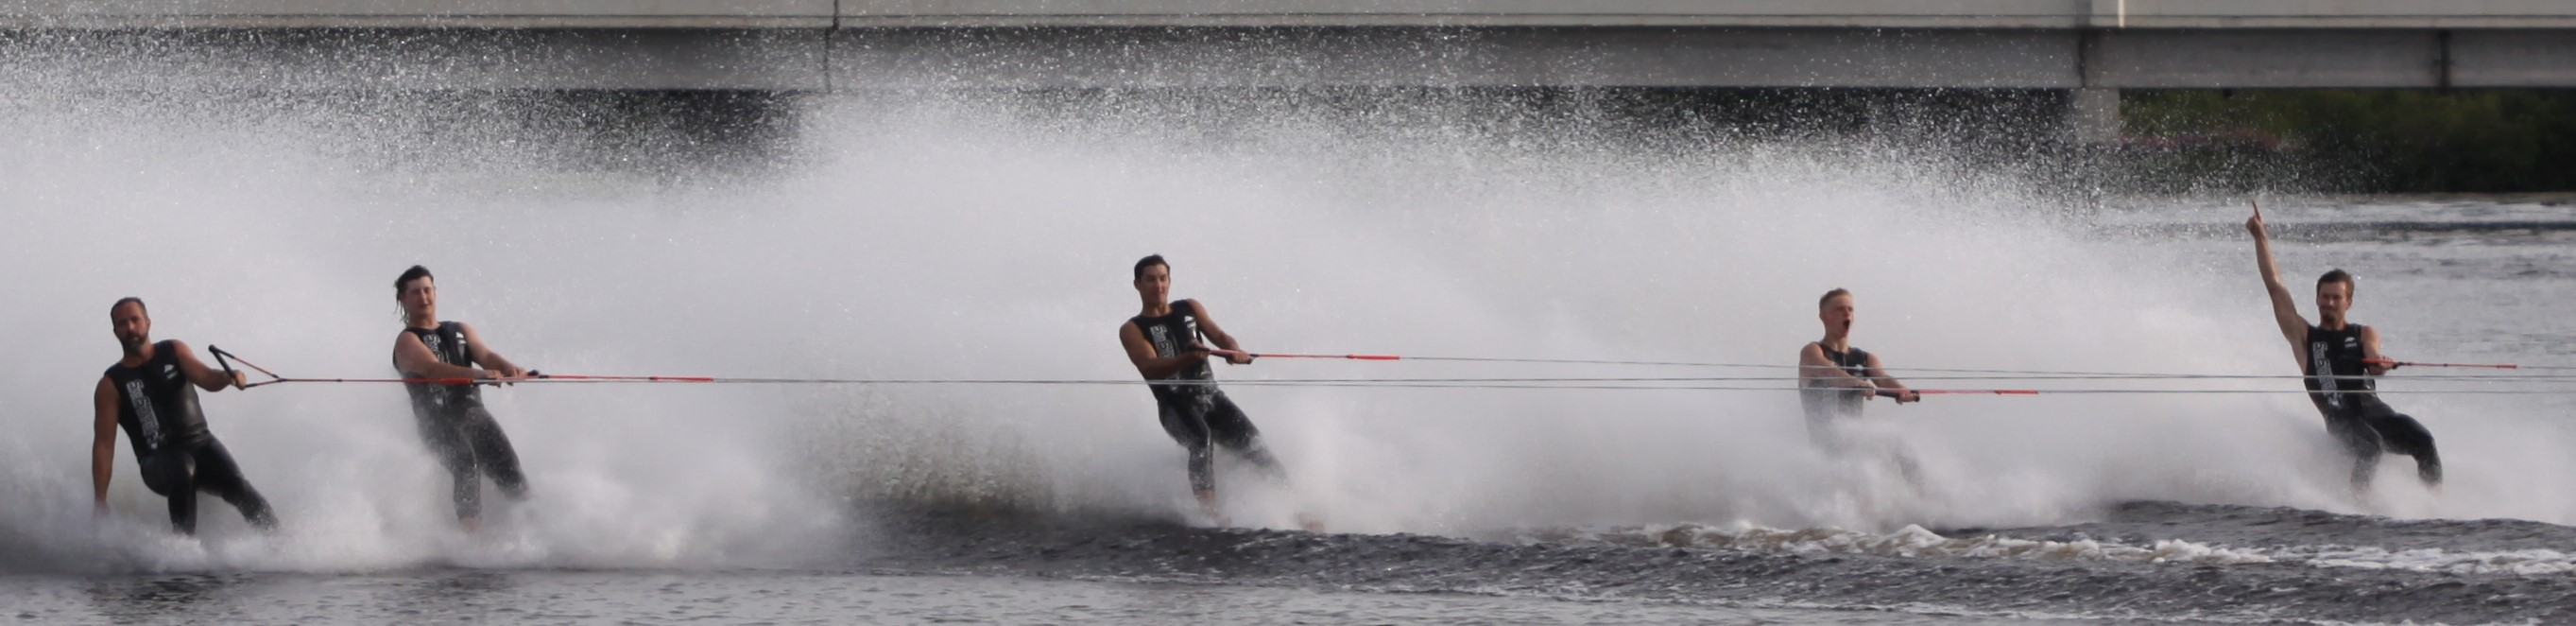 Shawano Ski Sharks barefoot skiers look to the crowd while performing during the Shawano Ski Sharks show on Wednesday. A big crowd showed up for the Ski Sharks final show of 2020.Morgan Rode | NEW Media